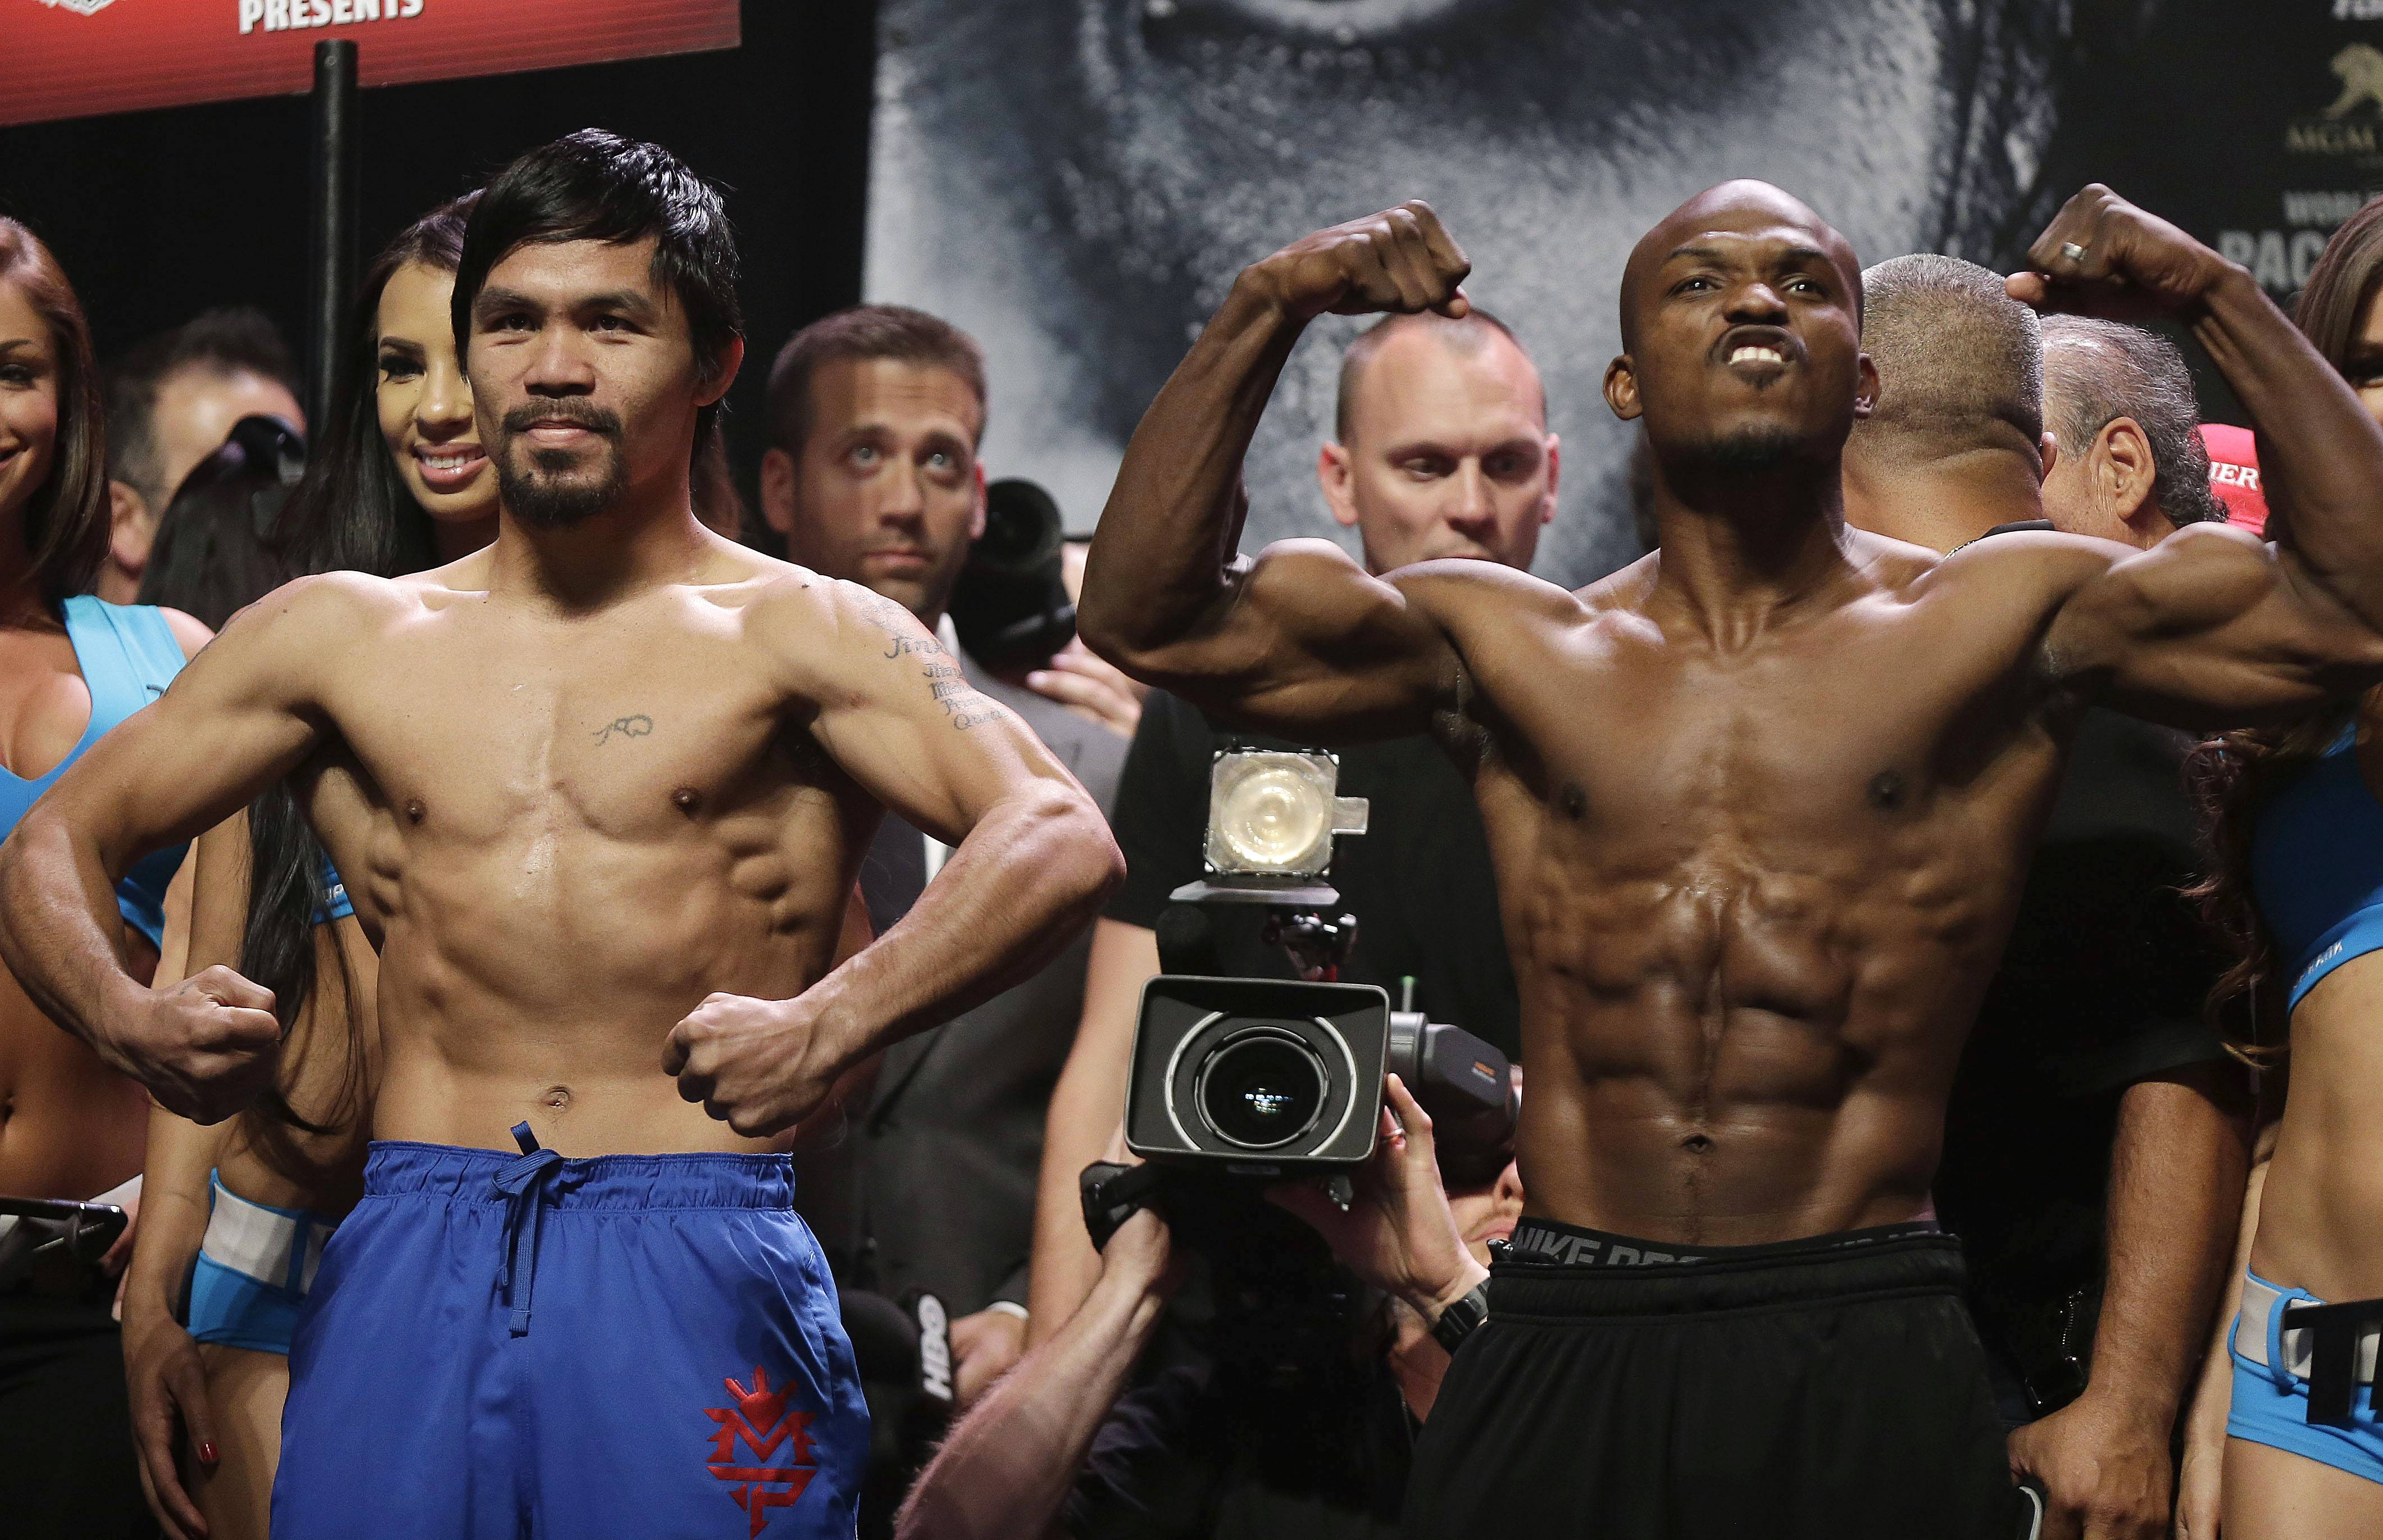 Manny Pacquiao, left, and Timothy Bradley pose for photos following after the weigh-in for Saturday's WBO welterweight championship boxing match, Friday, April 11, 2014, in Las Vegas.